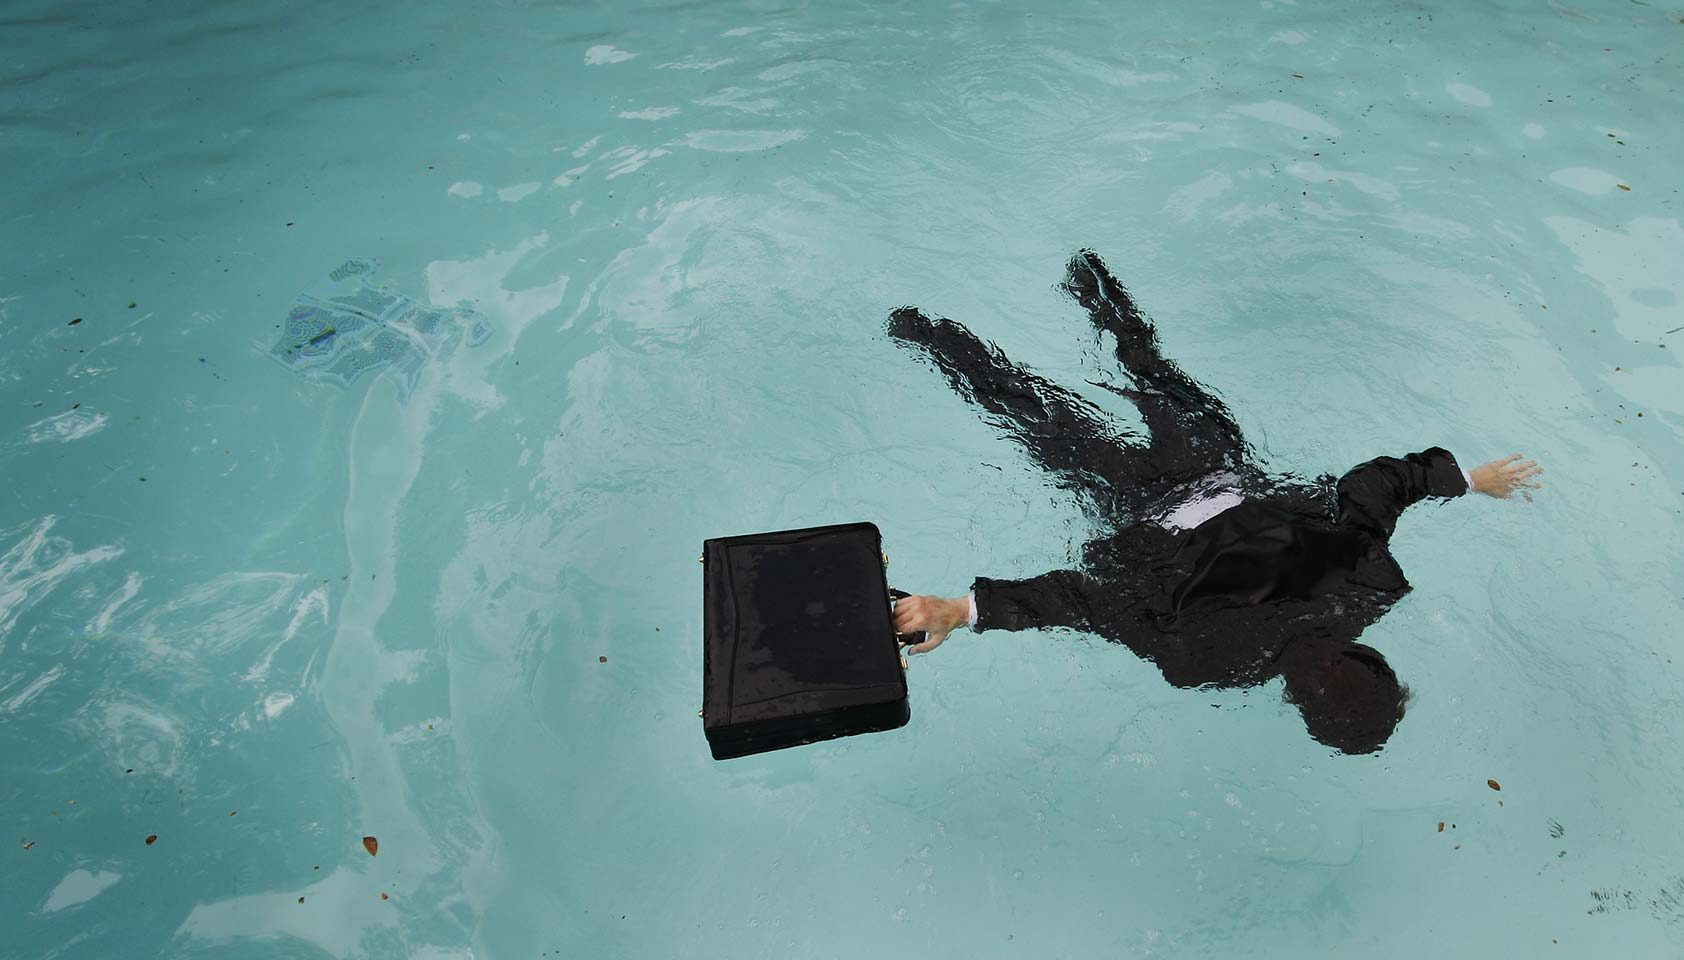 Is falling down the career ladder the end?